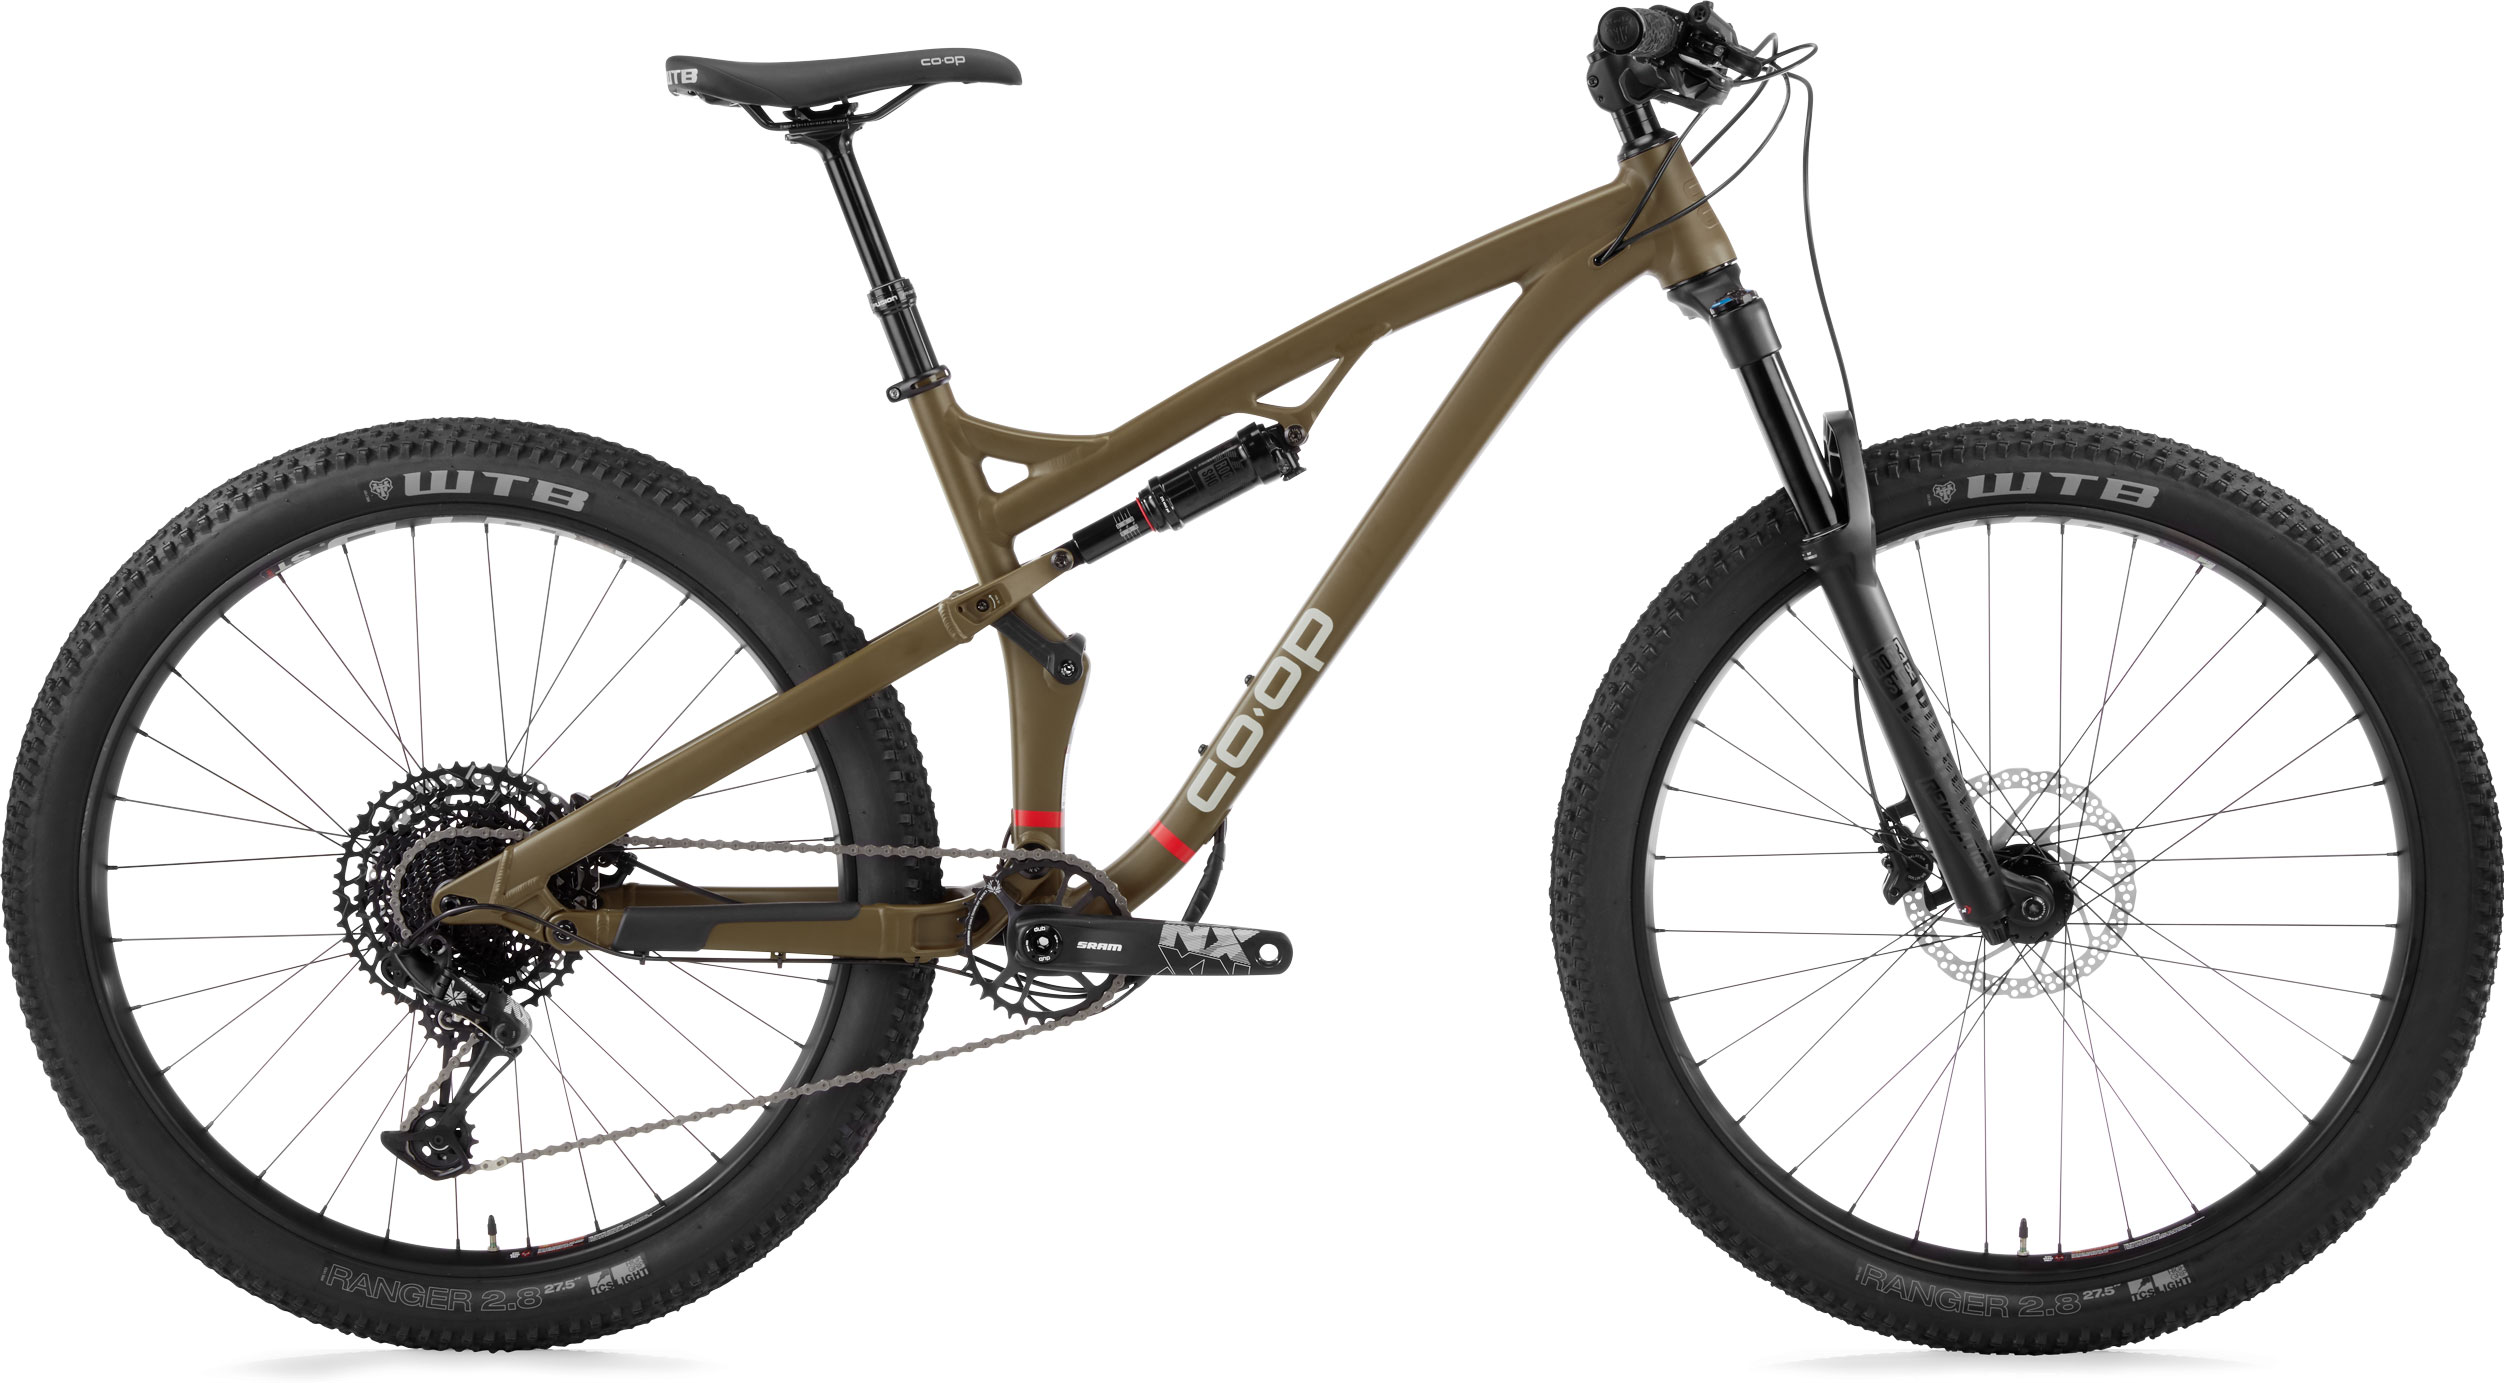 REI Co-op Cycles DRT 3.2 full-suspension mountain bike